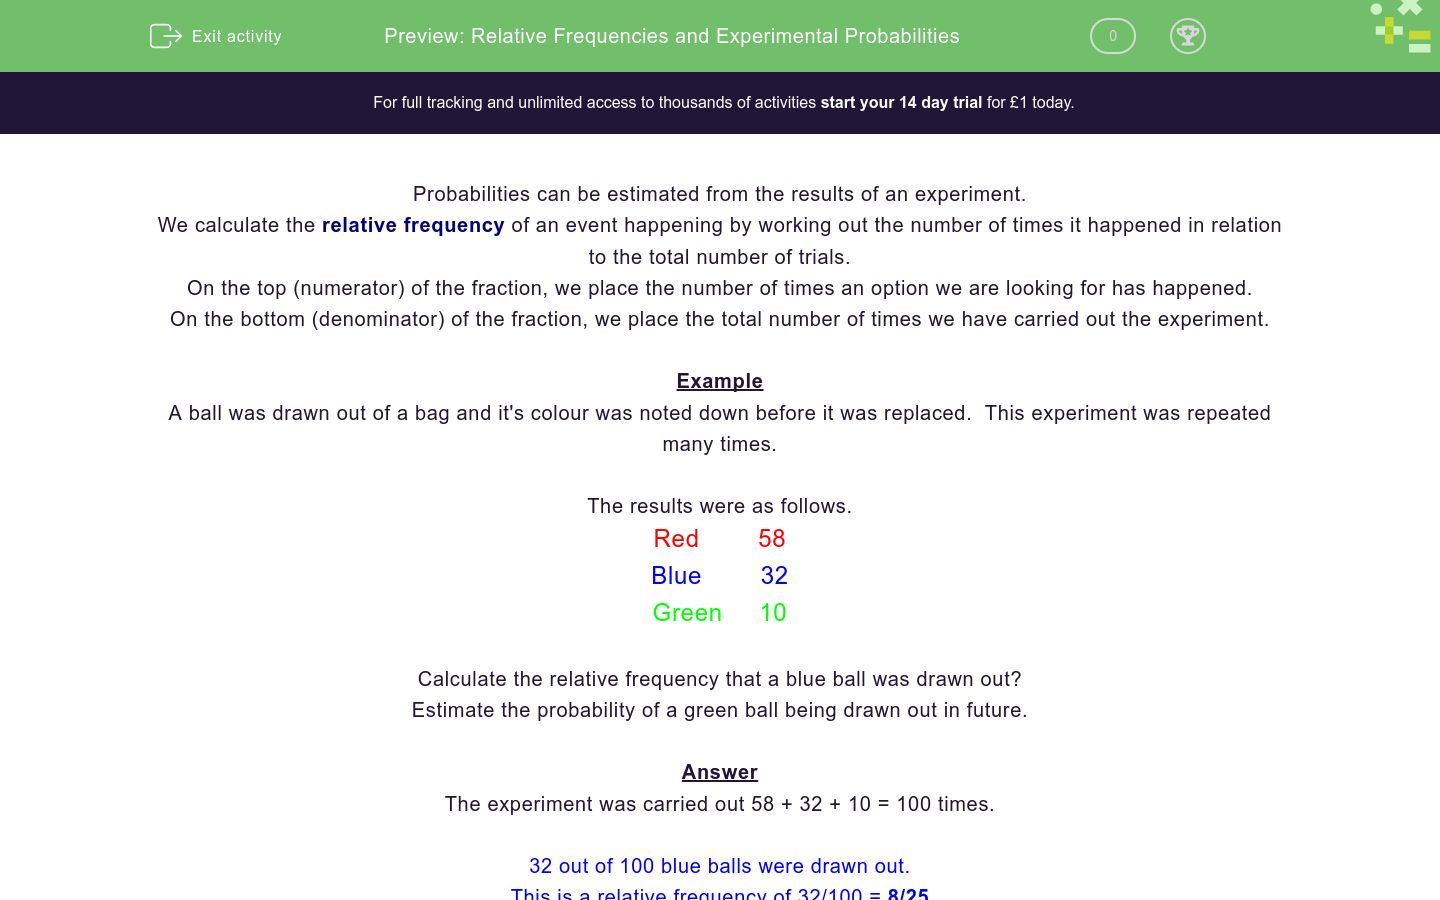 'Relative Frequencies and Experimental Probabilities' worksheet